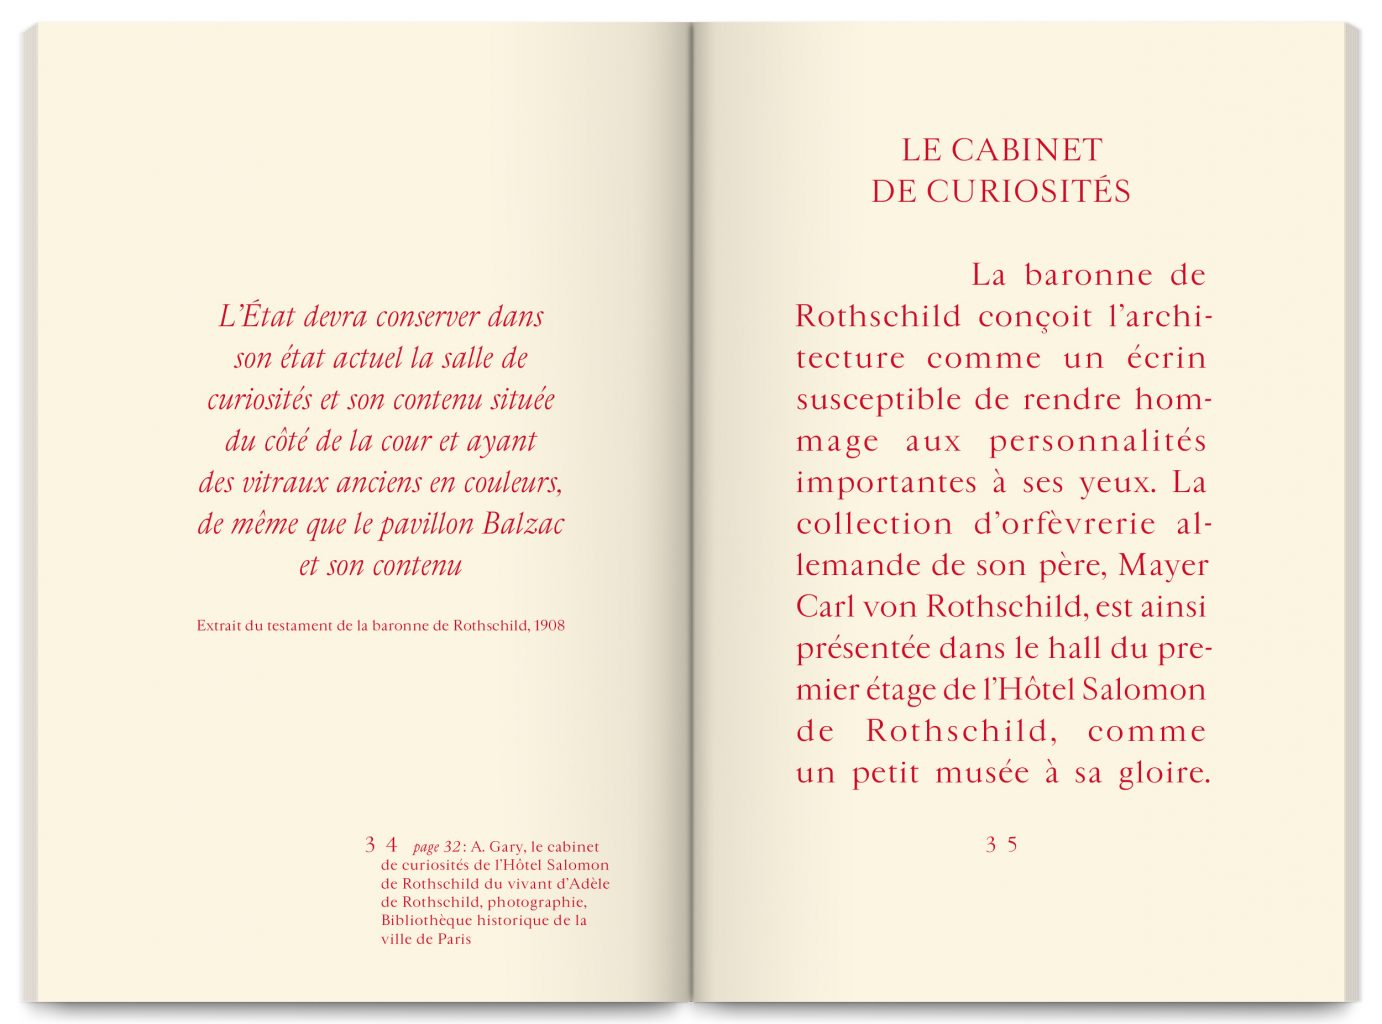 Publication Cabinet de curiosités – Hôtel Salomon de Rothschild, published by FNAGP, designed by In the shade of a tree studio, founded by Sophie Demay and Maël Fournier Comte.